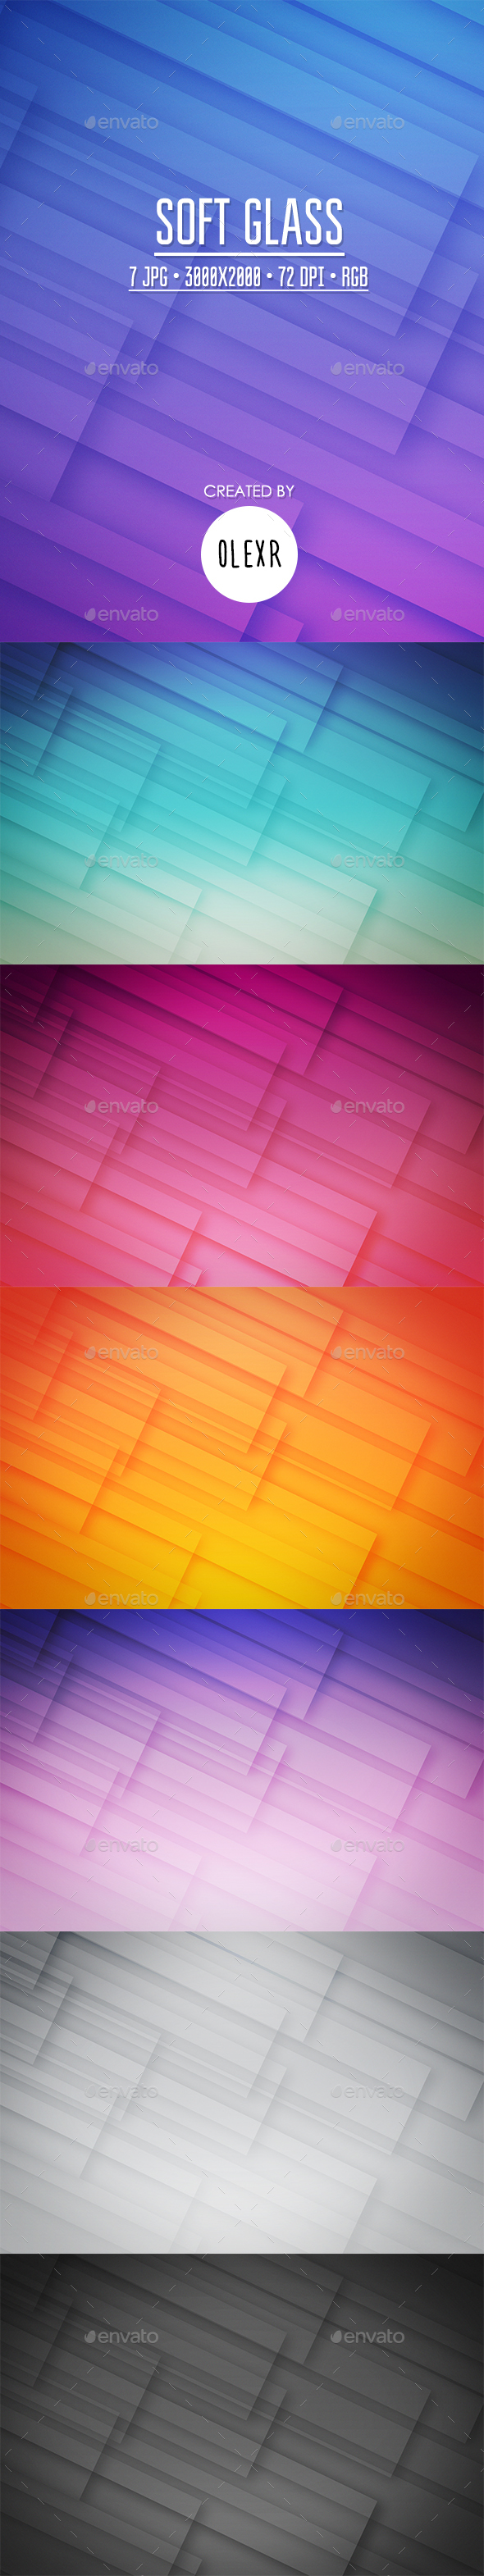 Soft Glass Backgrounds - Abstract Backgrounds